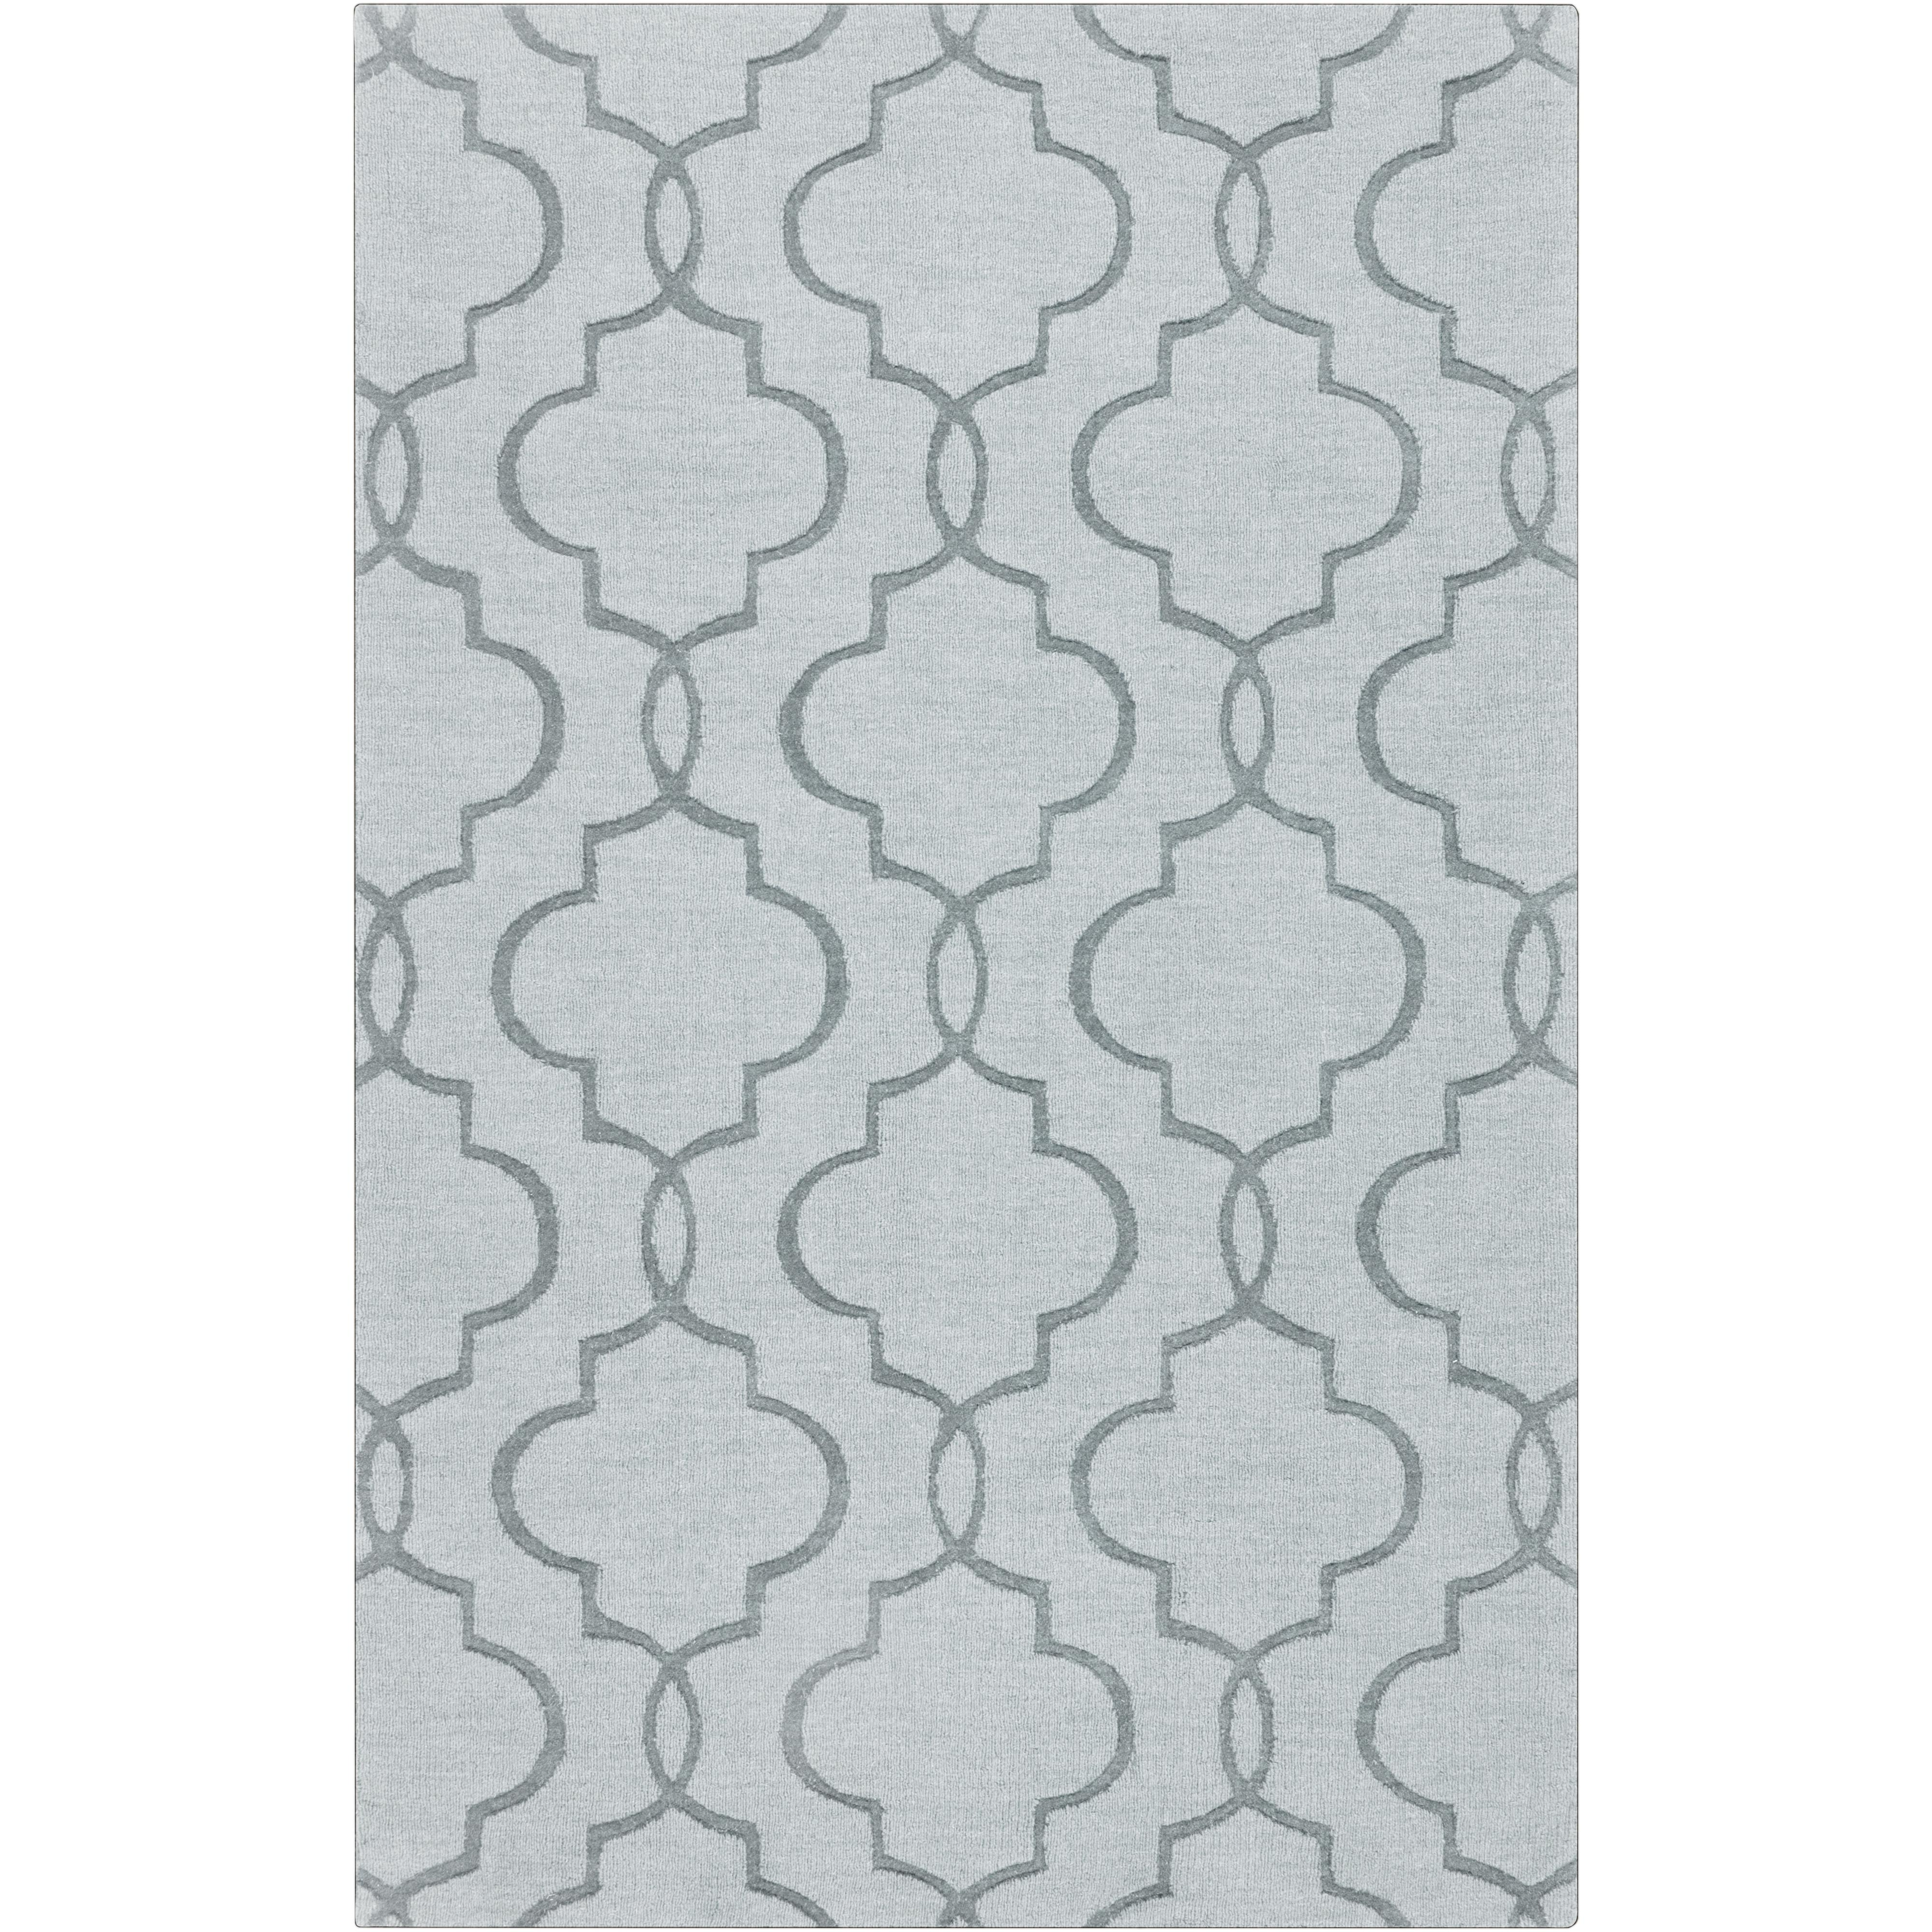 Surya Mystique 5' x 8' - Item Number: M5172-58